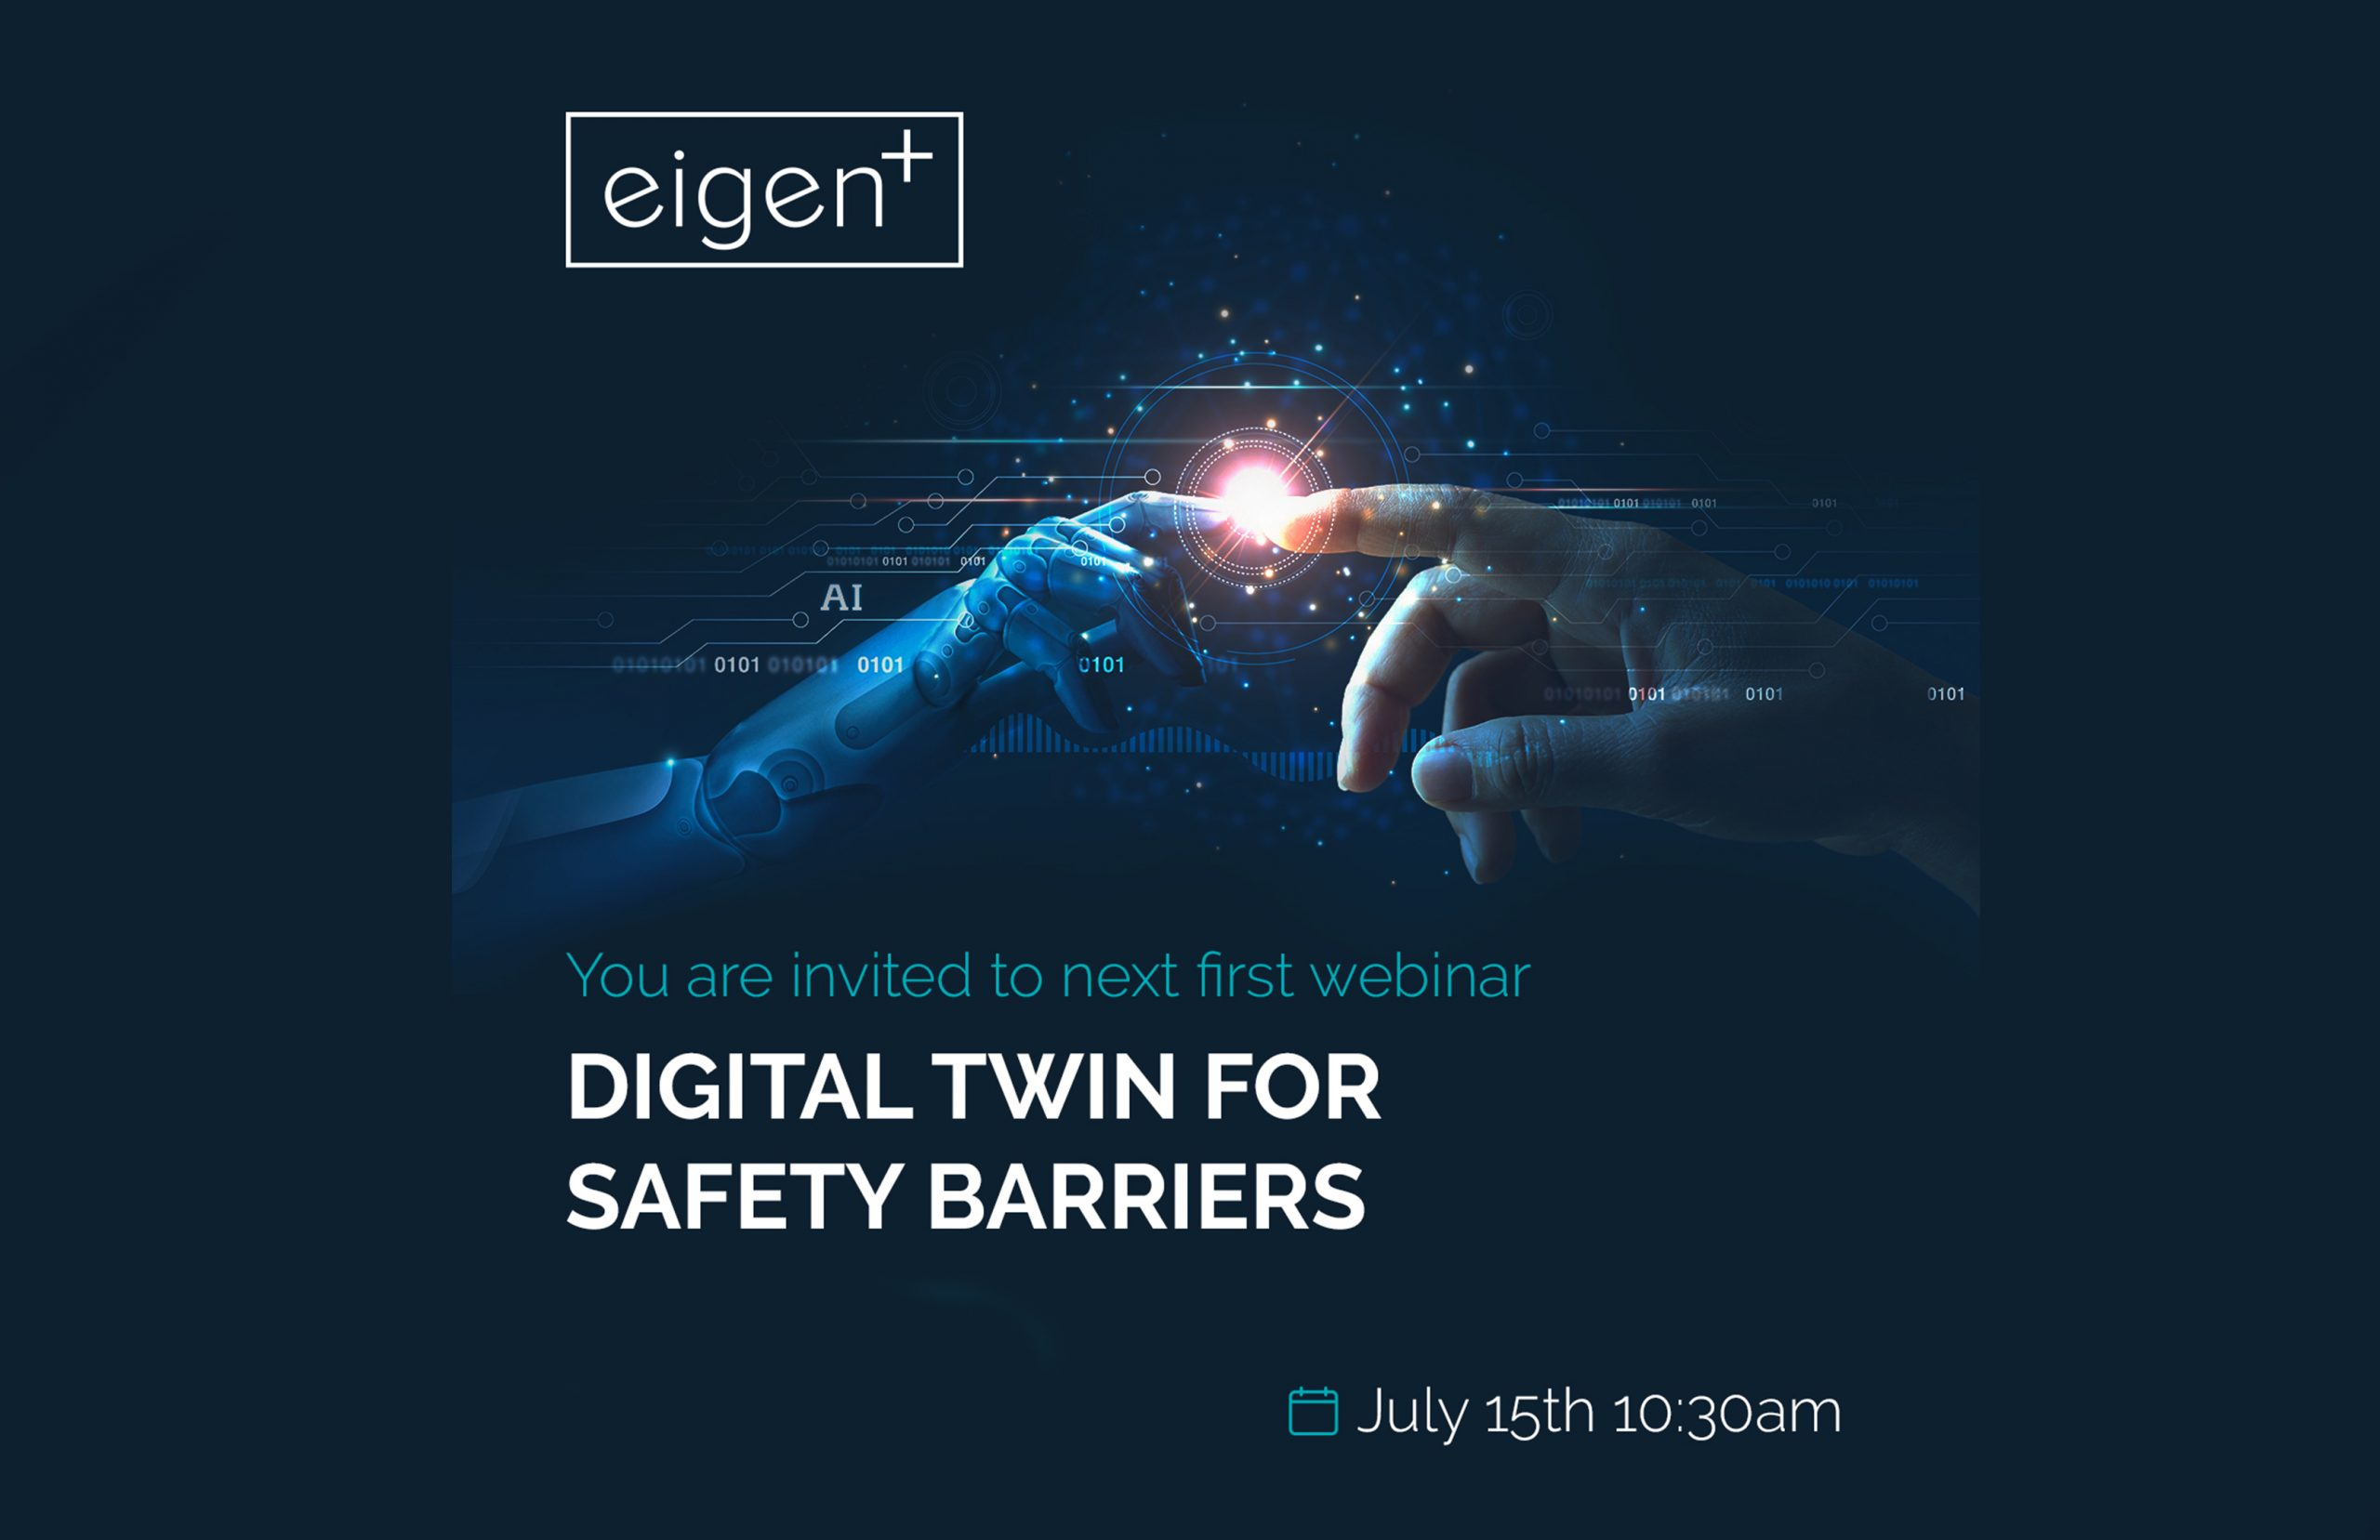 Digital Twin for Safety Barriers - Eigen